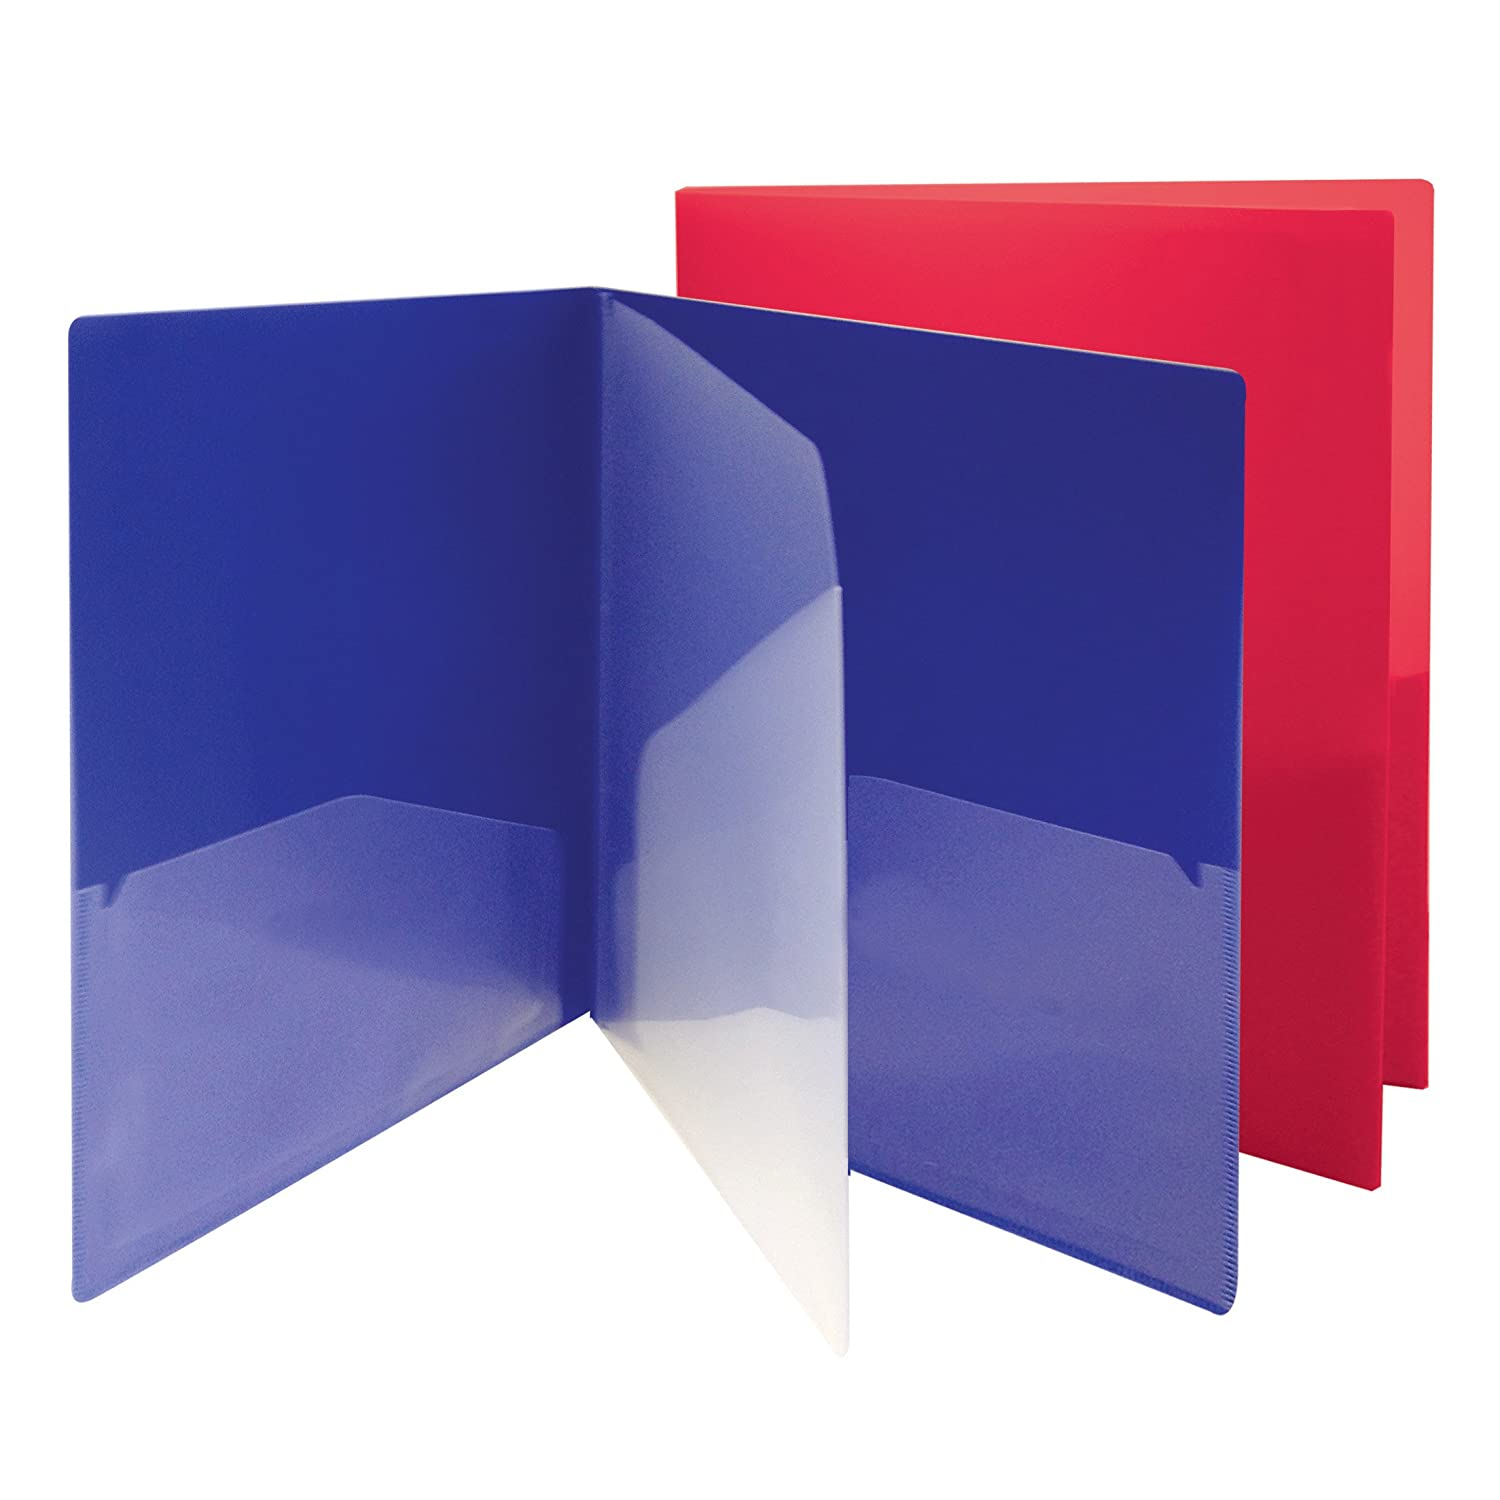 Smead Campus.org Poly Subject Folder, 4 Pockets, Letter Size, Assorted Colors (87712)